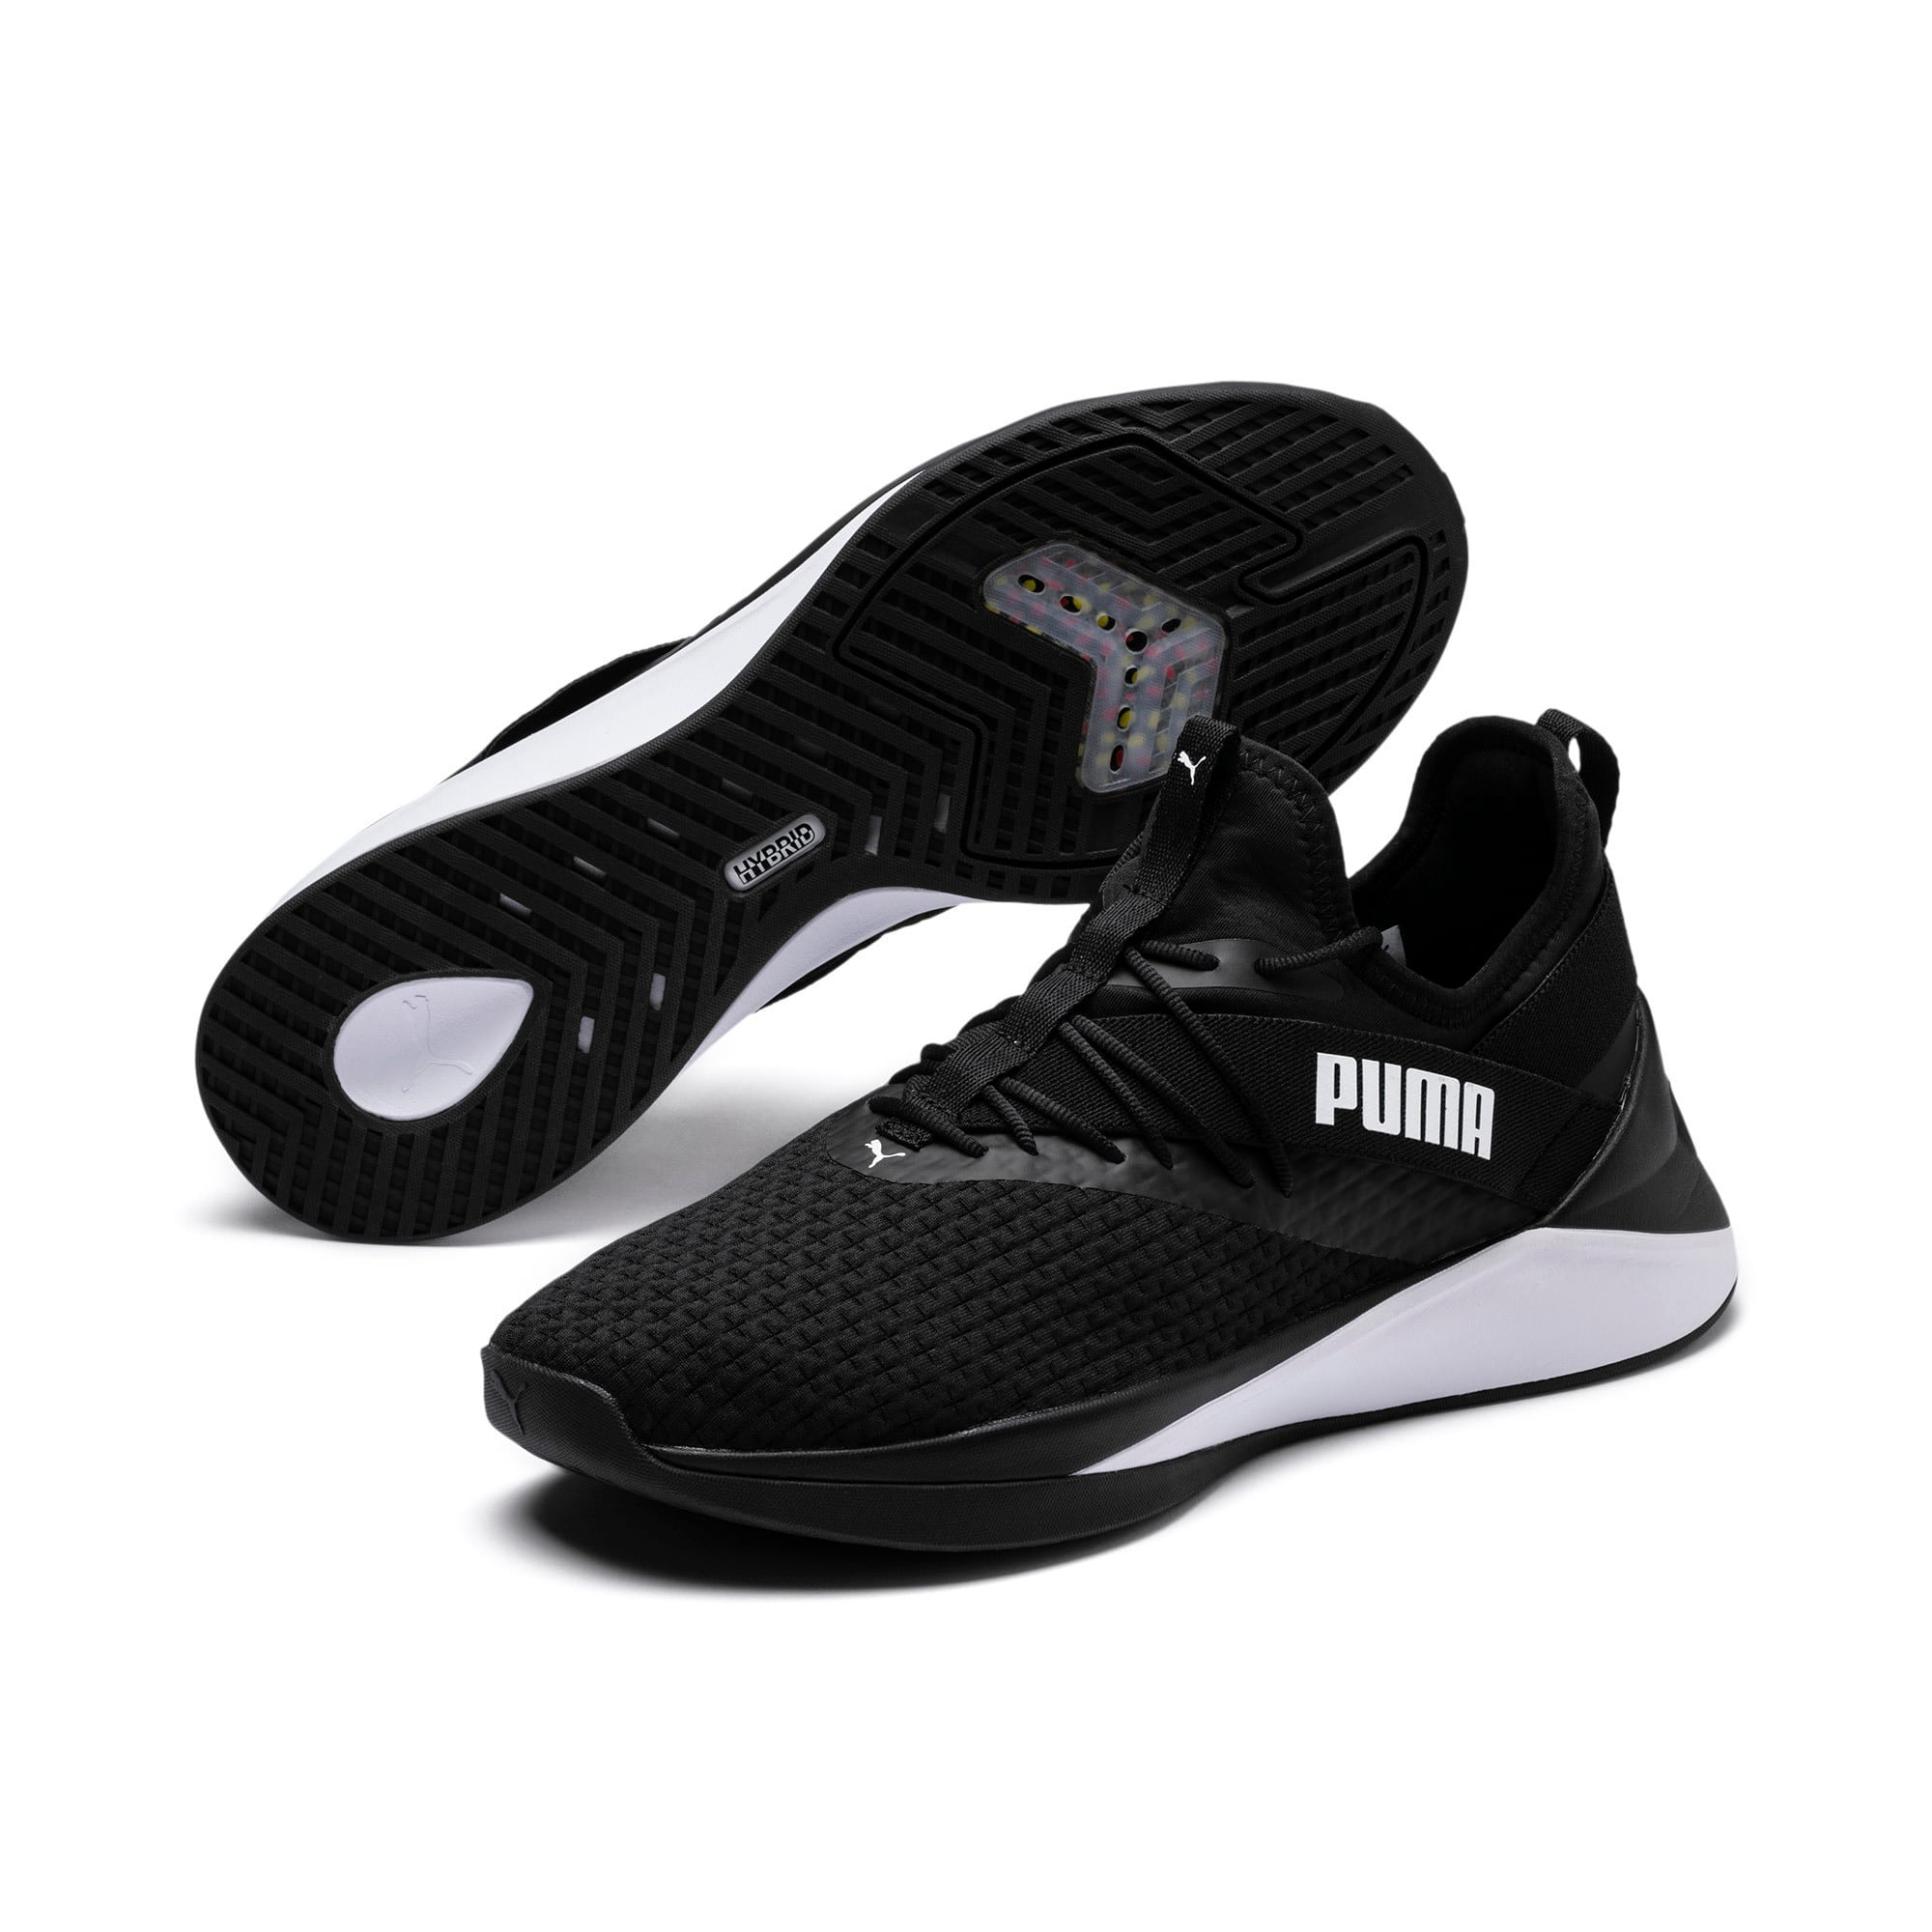 Thumbnail 3 of Jaab XT sneakers voor heren, Puma Black-Puma White, medium